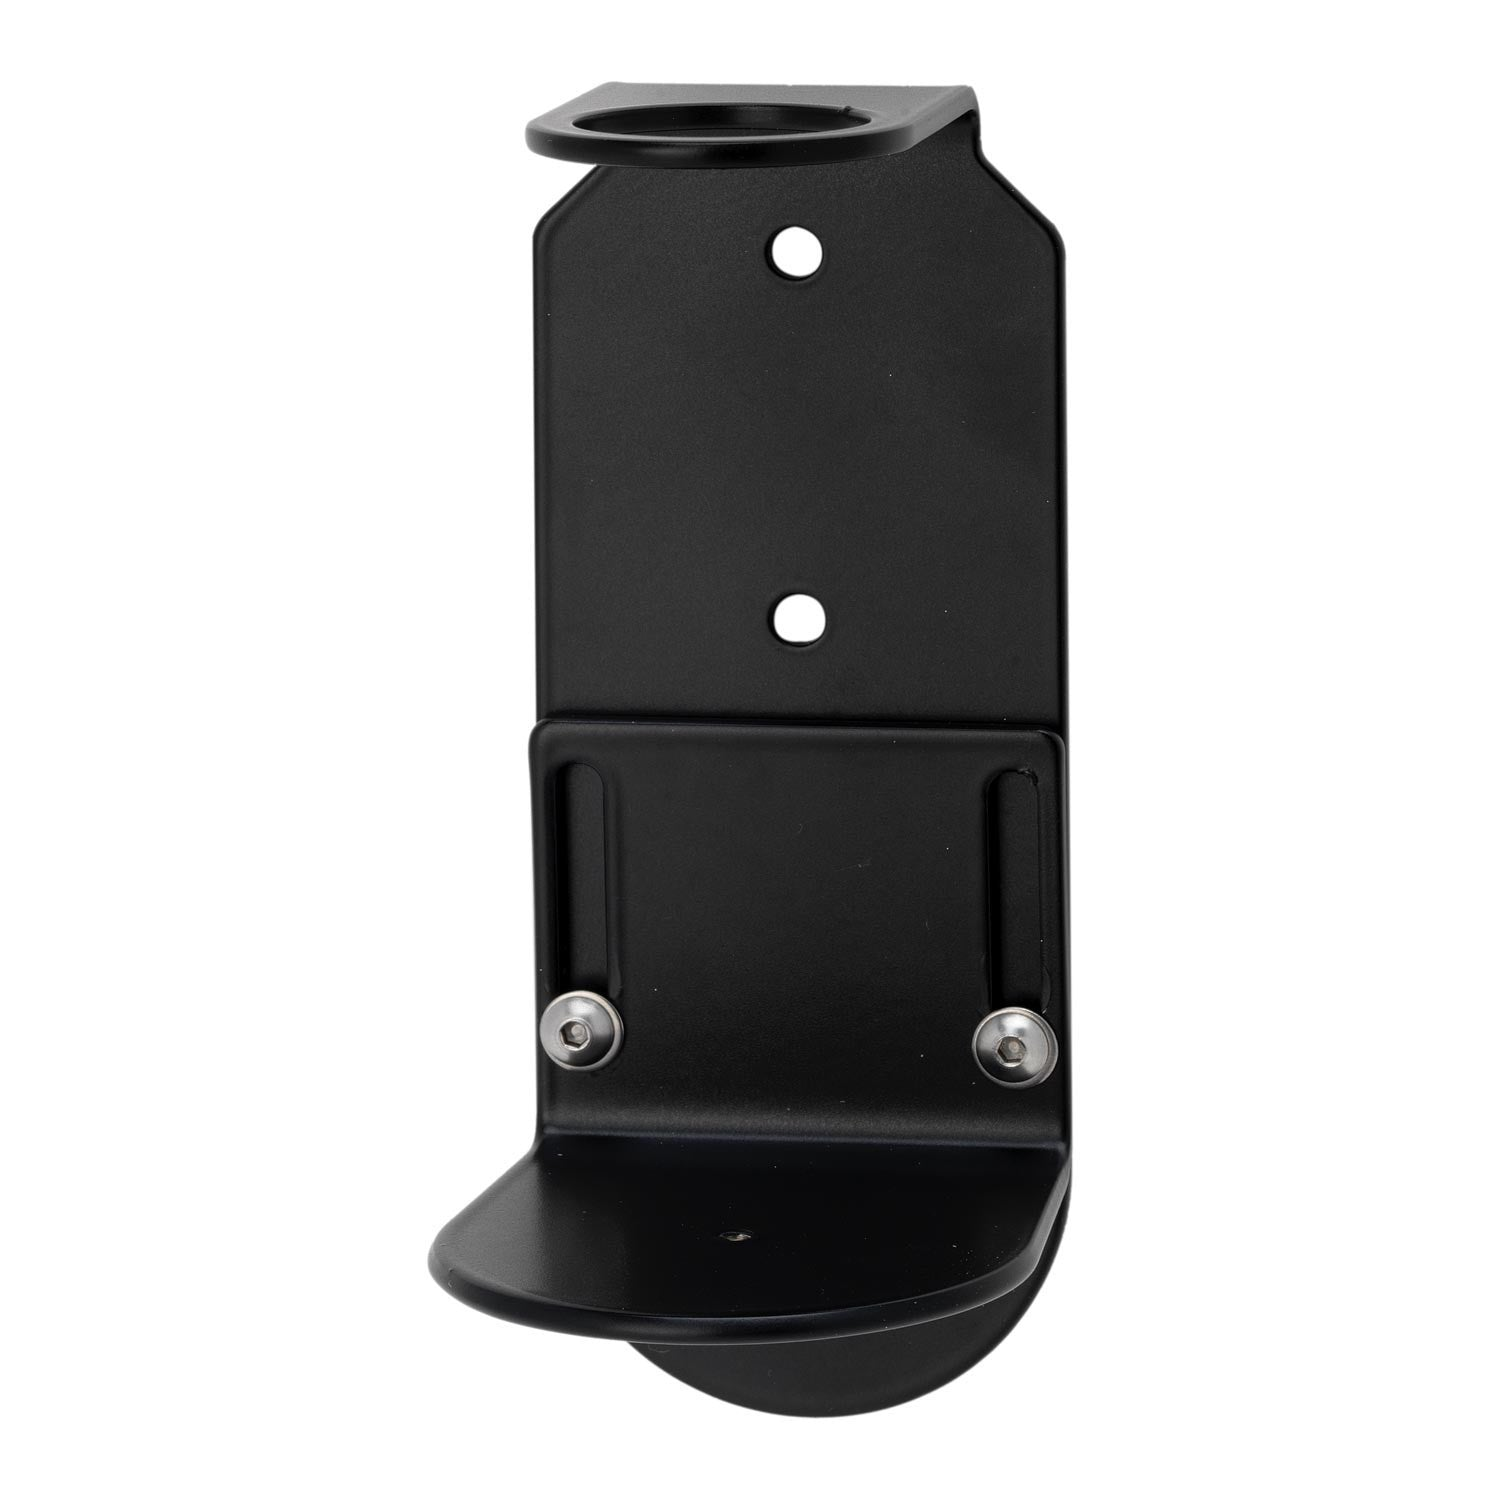 satin black singles Here come the deals 15% off on single-bottle vino styx wine rack, satin black, facing left right now don't miss this new low price.